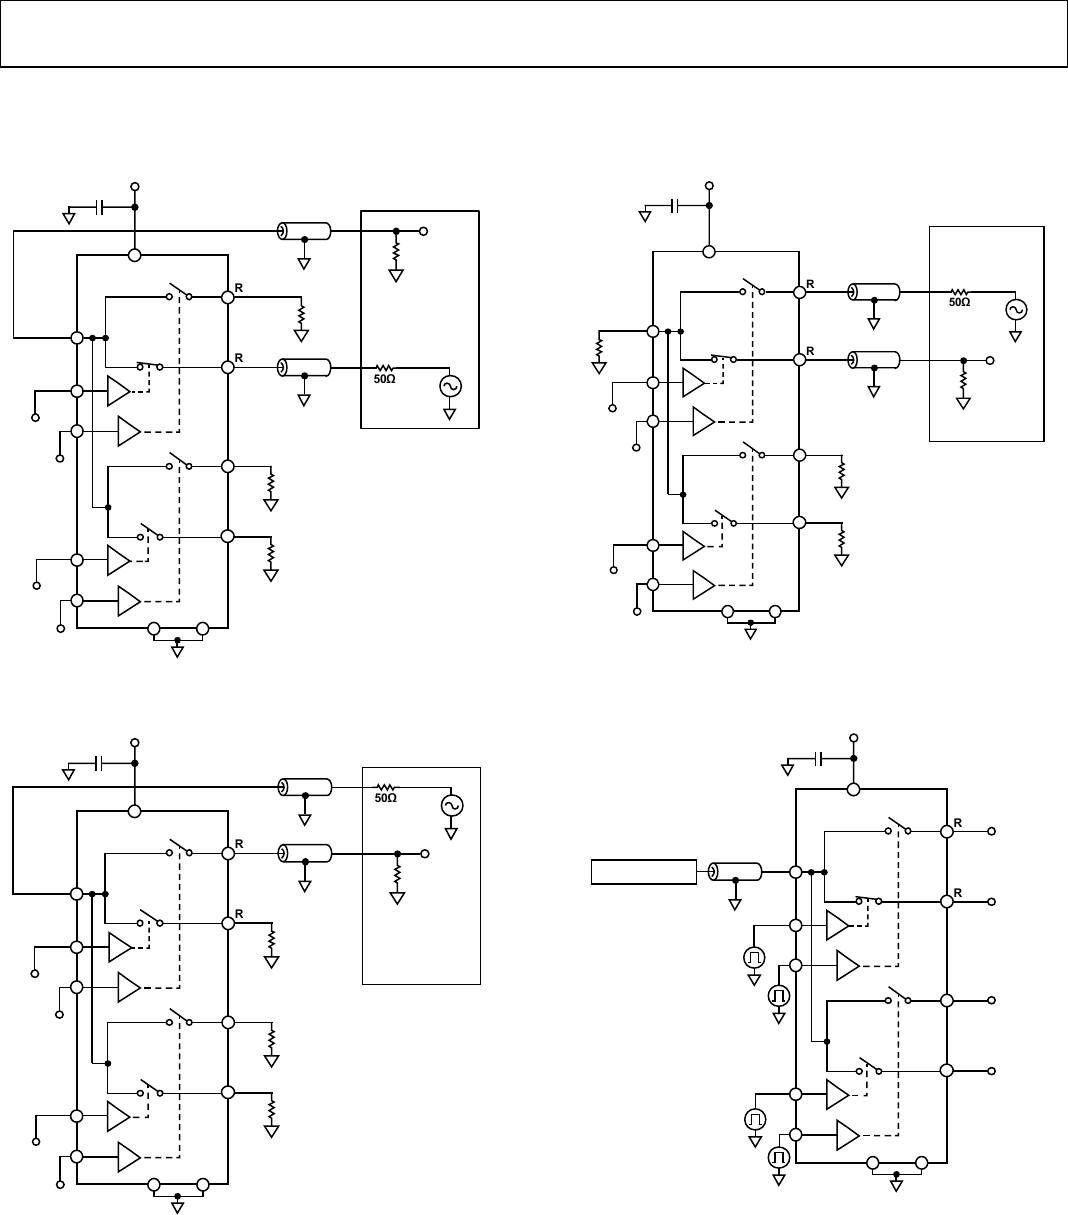 Audio Spectrum Yzer Circuit Diagram | Adgm1304 Datasheet Analog Devices Digikey